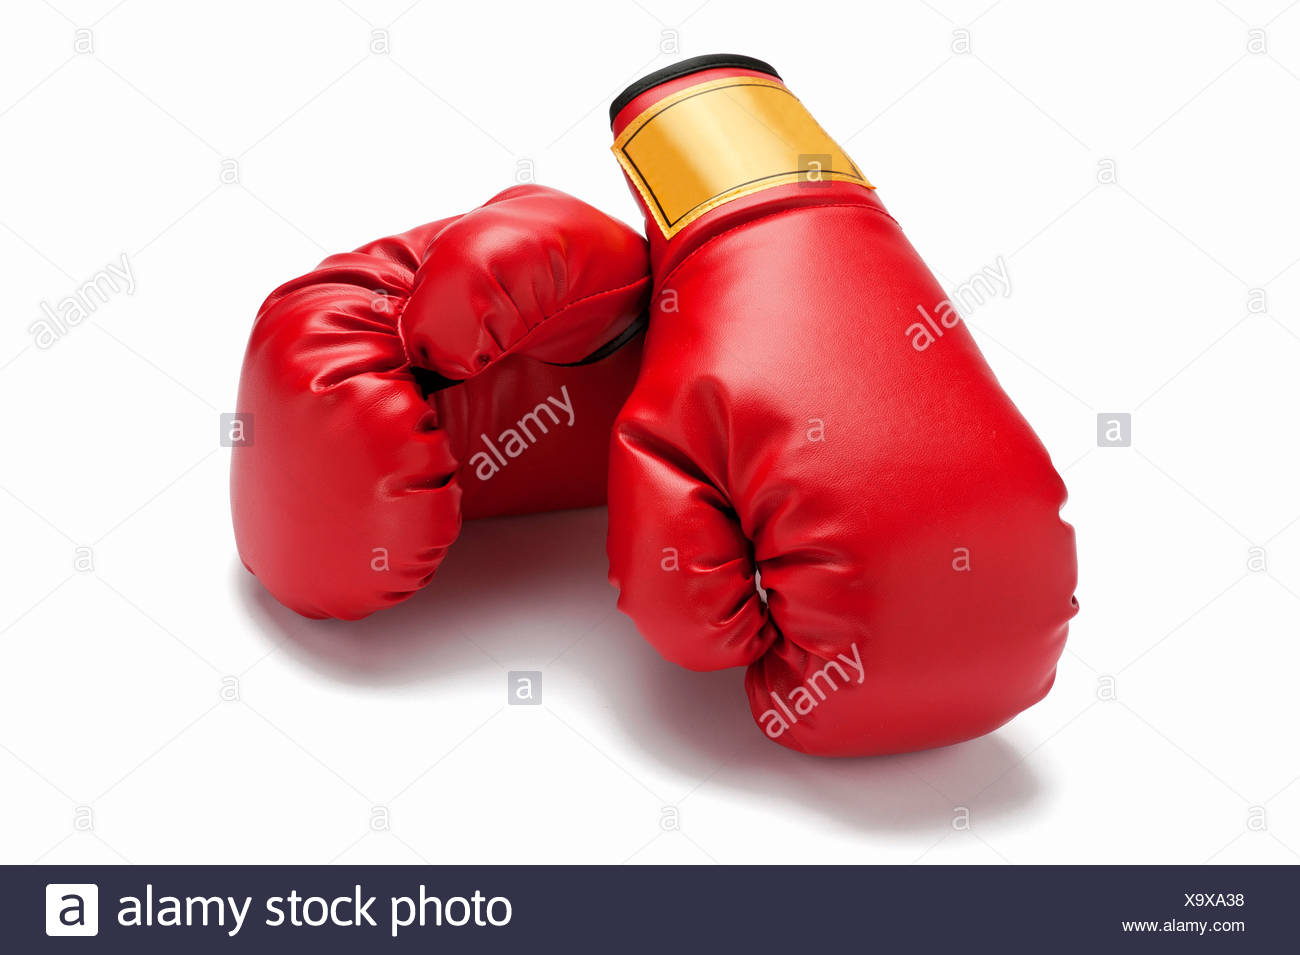 A pair of red boxing gloves - Stock Image